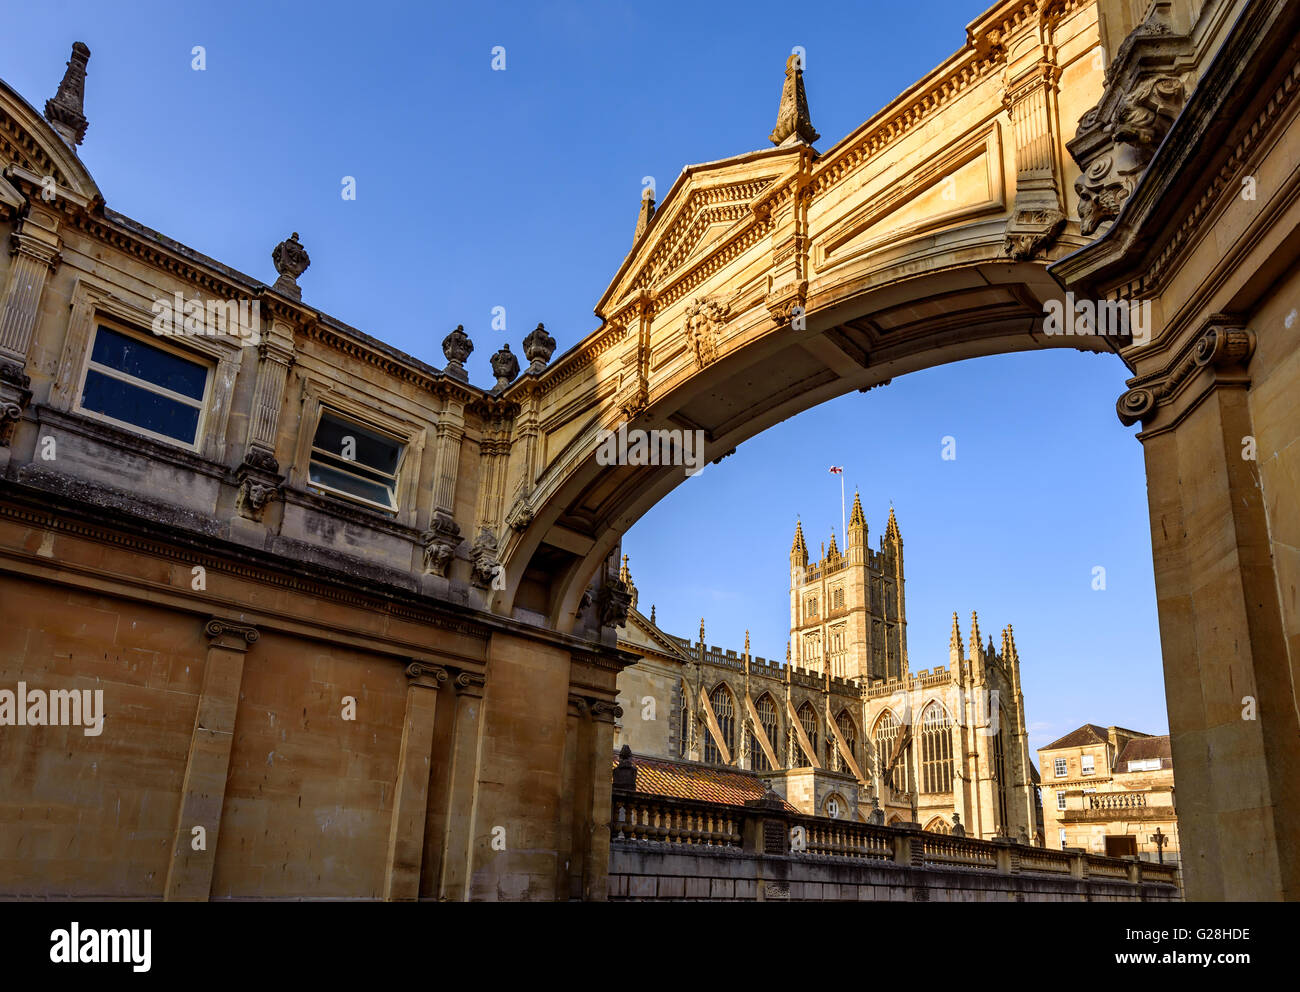 The Historical Bath Cathedral in Bath City, UK - Stock Image